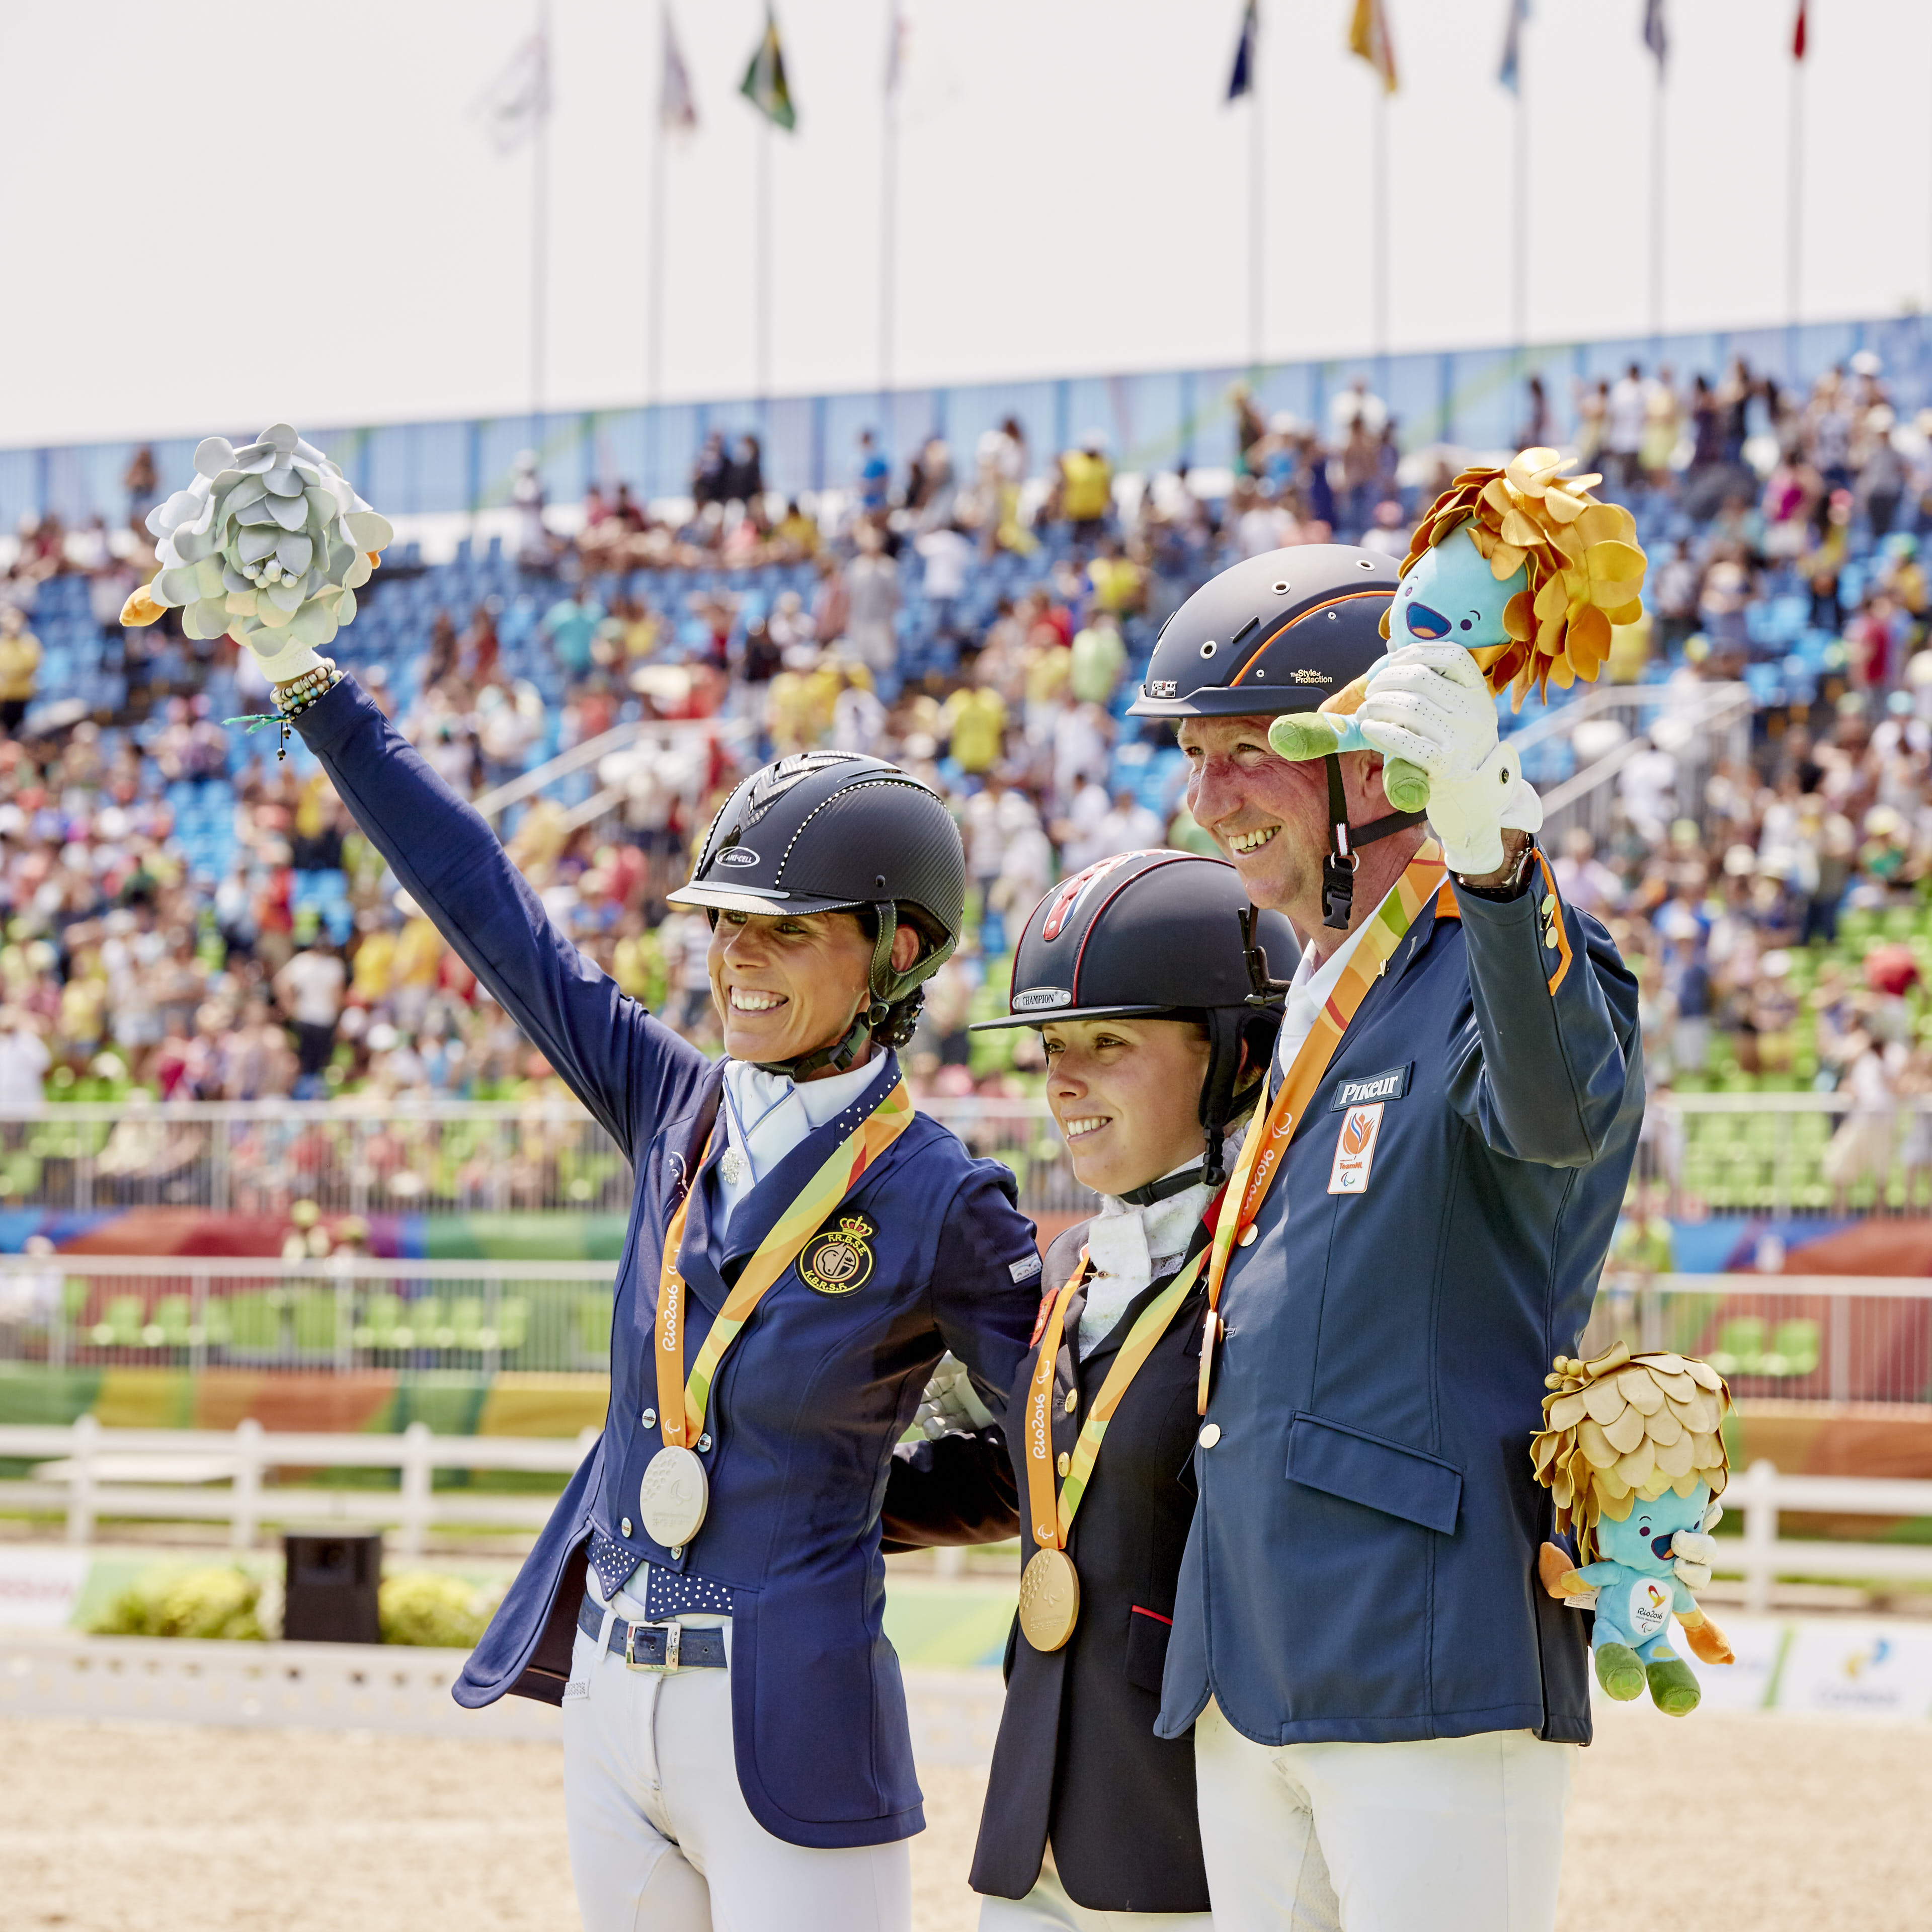 Grade IV Podium finish, Sophie Wells (Gold, UK), Belgium's Michèle George (silver), and The Netherlands' Frank Hosmar (bronze) (Image: FEI/Liz Gregg)